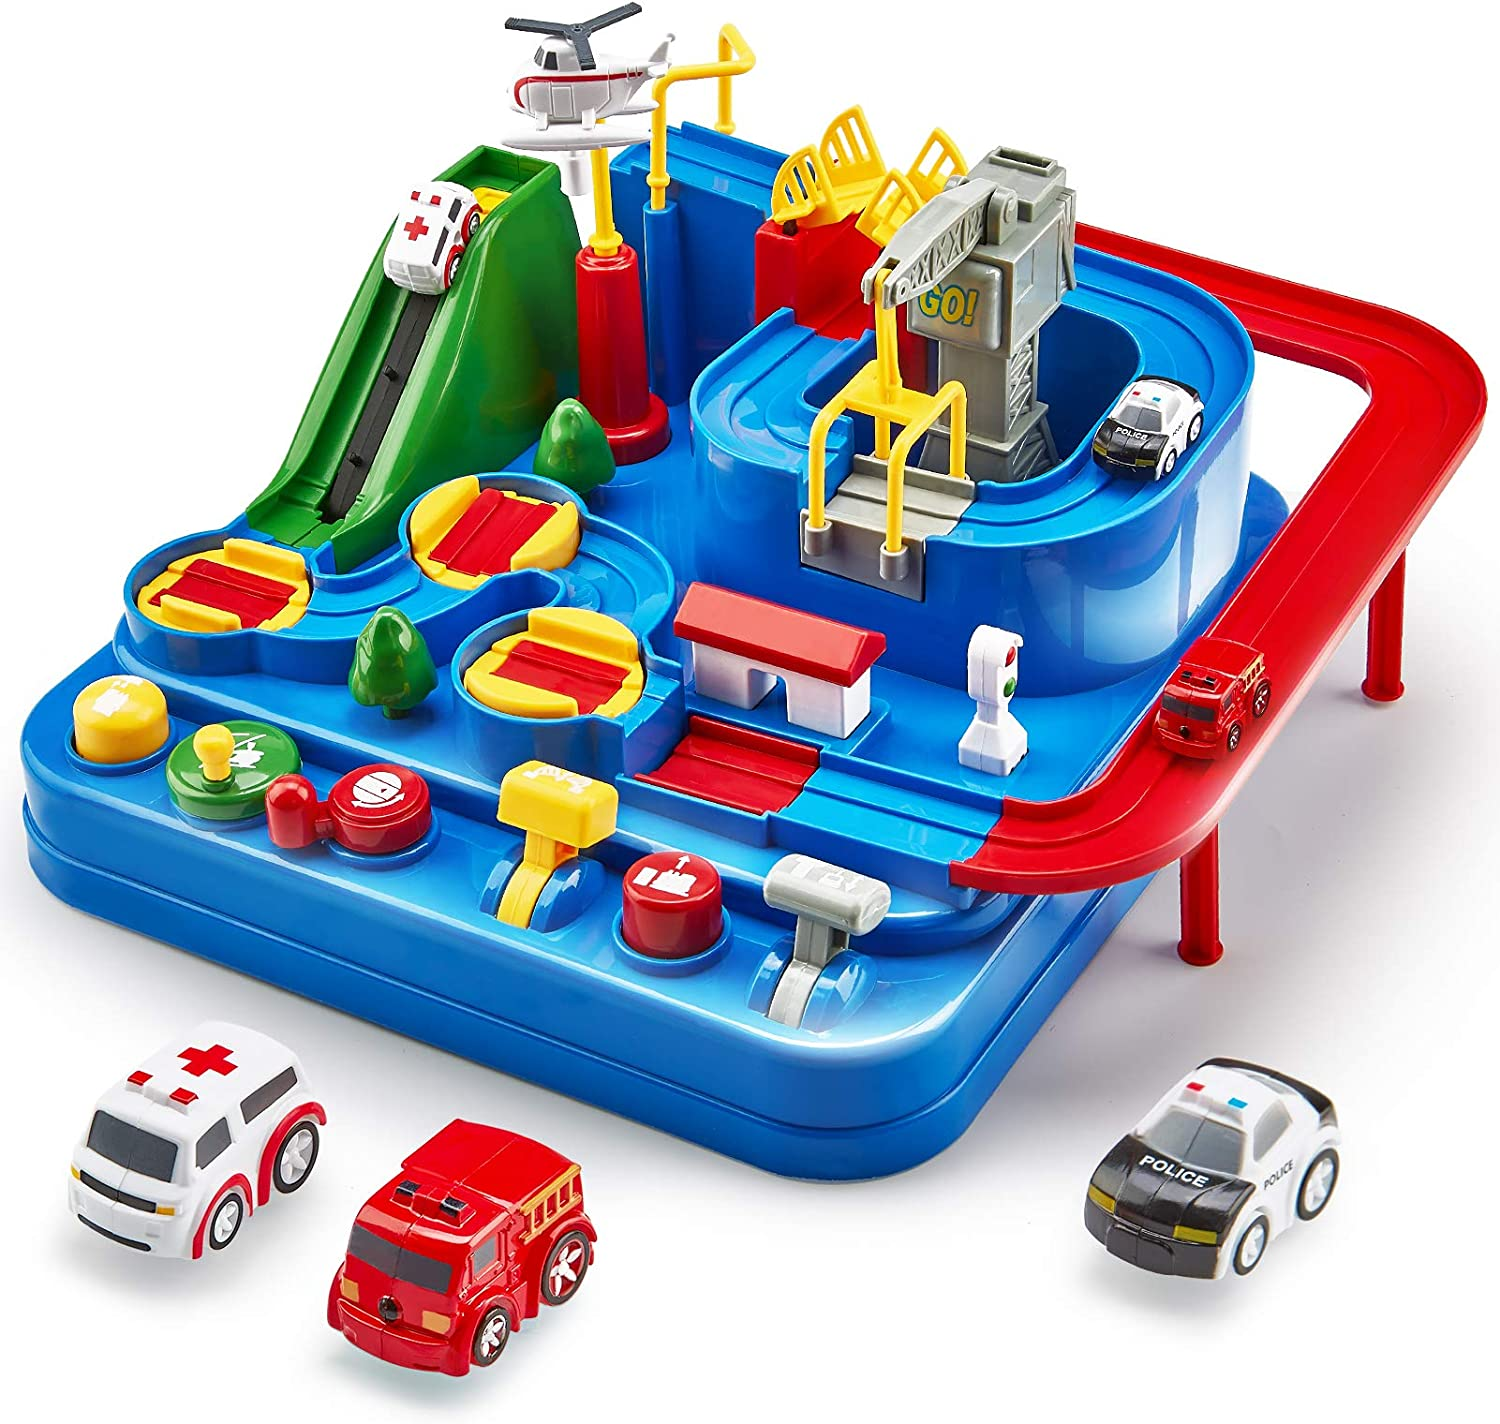 Car Adventure Toy Smart Wheels Park And Learn Garage Mini Car Toys Manipulative Rescue Squad Adventure Train Track Set Racing Gifts Children Railway Track Interactive Toys